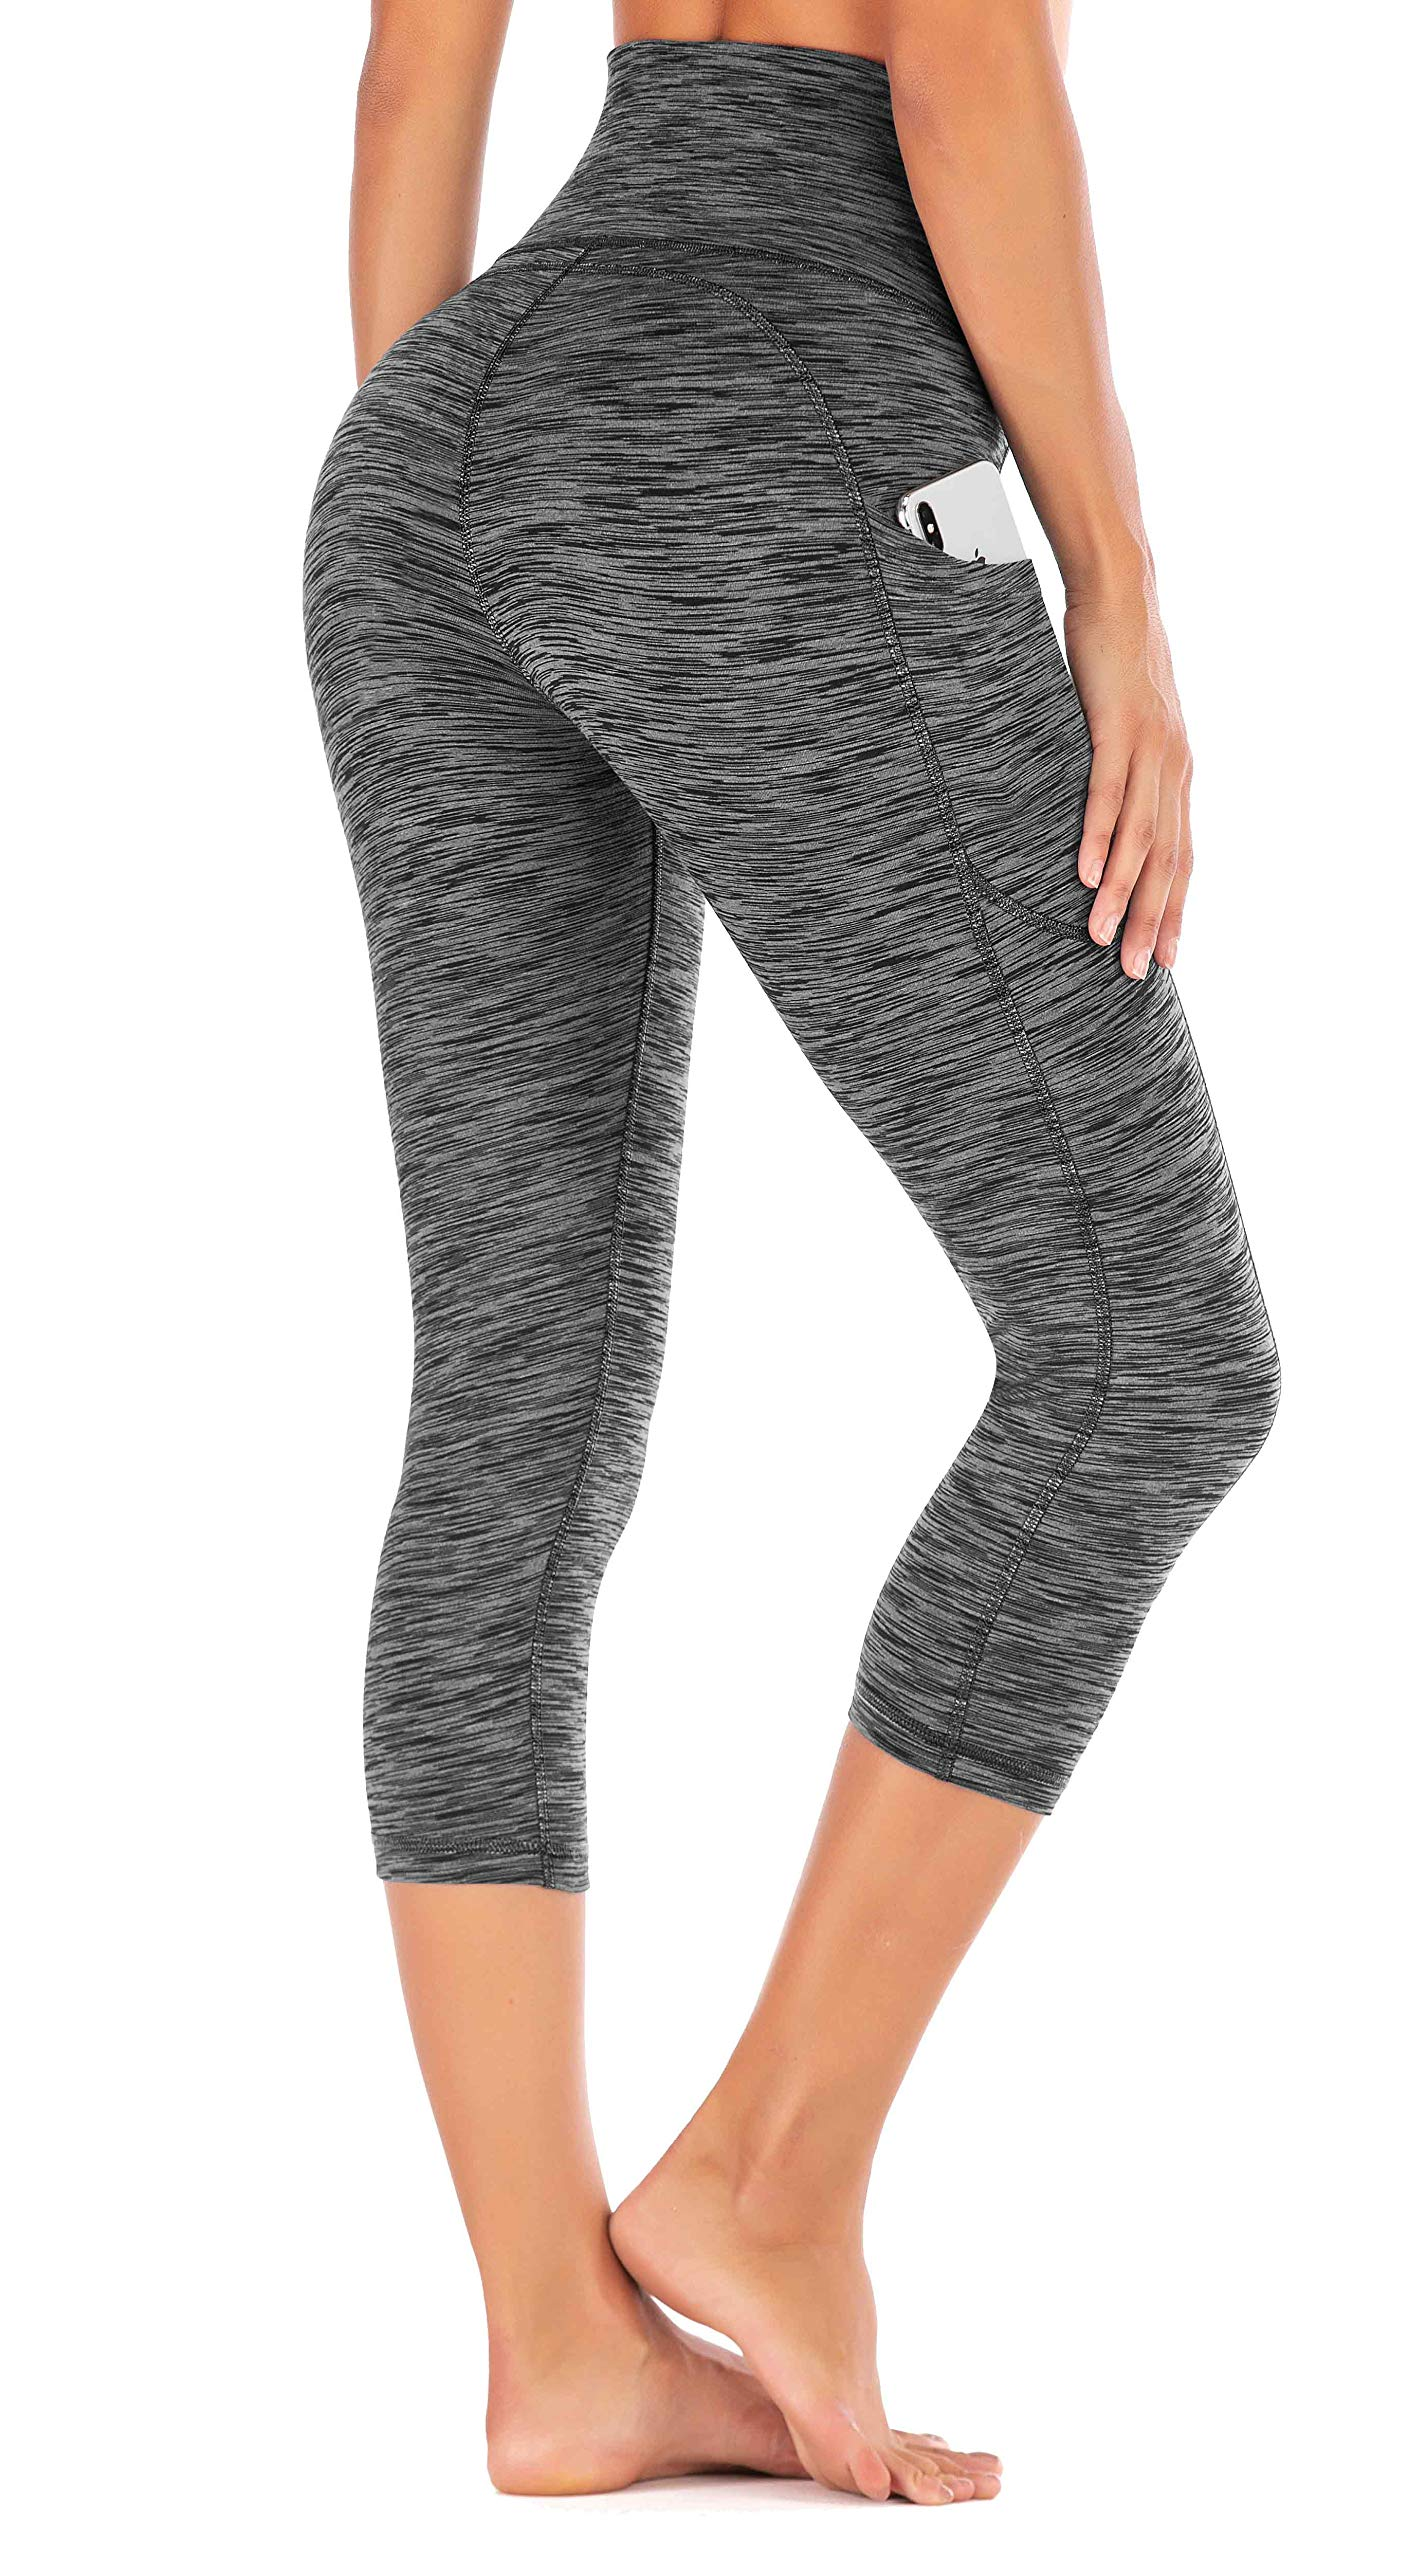 IUGA High Waist Yoga Pants with Pockets, Tummy Control Yoga Capris for Women, 4 Way Stretch Capri Leggings with Pockets(Space Dye Gray, XS) by IUGA